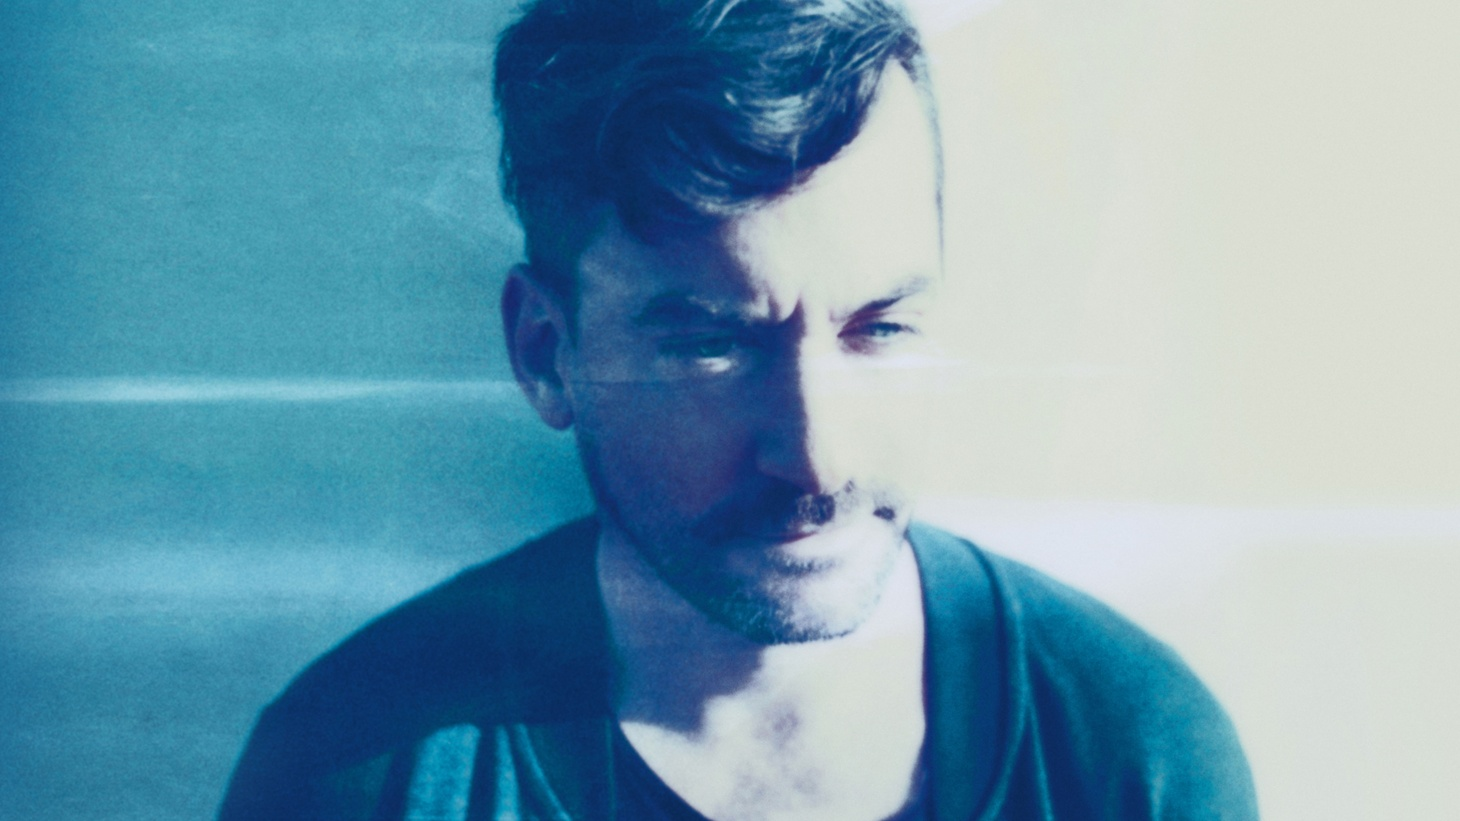 British electronic producer Simon Green, aka Bonobo, sits down with Jason Bentley to premiere some new tracks and discuss his sixth album, Migration.